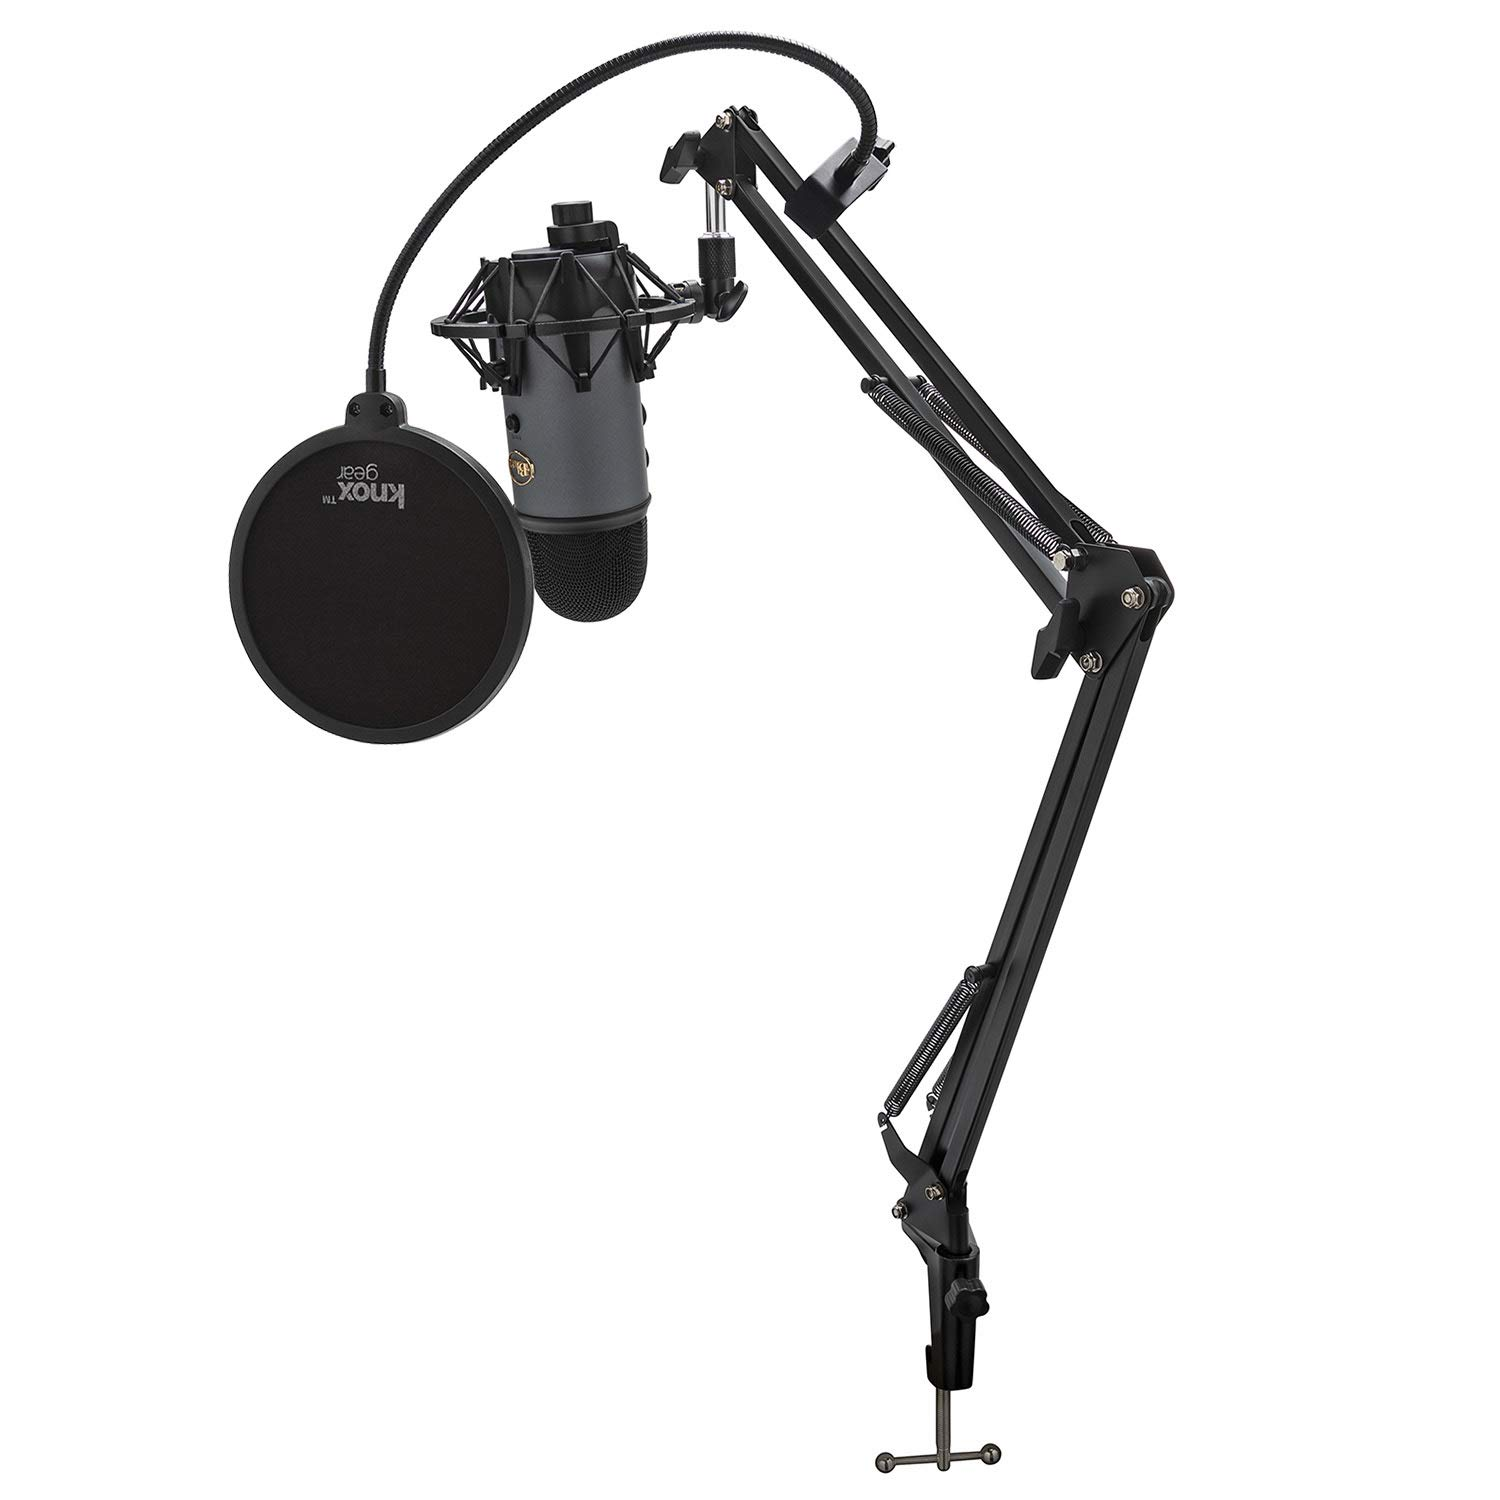 BLUE Microphone Yeti USB Microphone (Slate) with Knox Shock Mount, Studio Stand and Pop Filter by BLUE